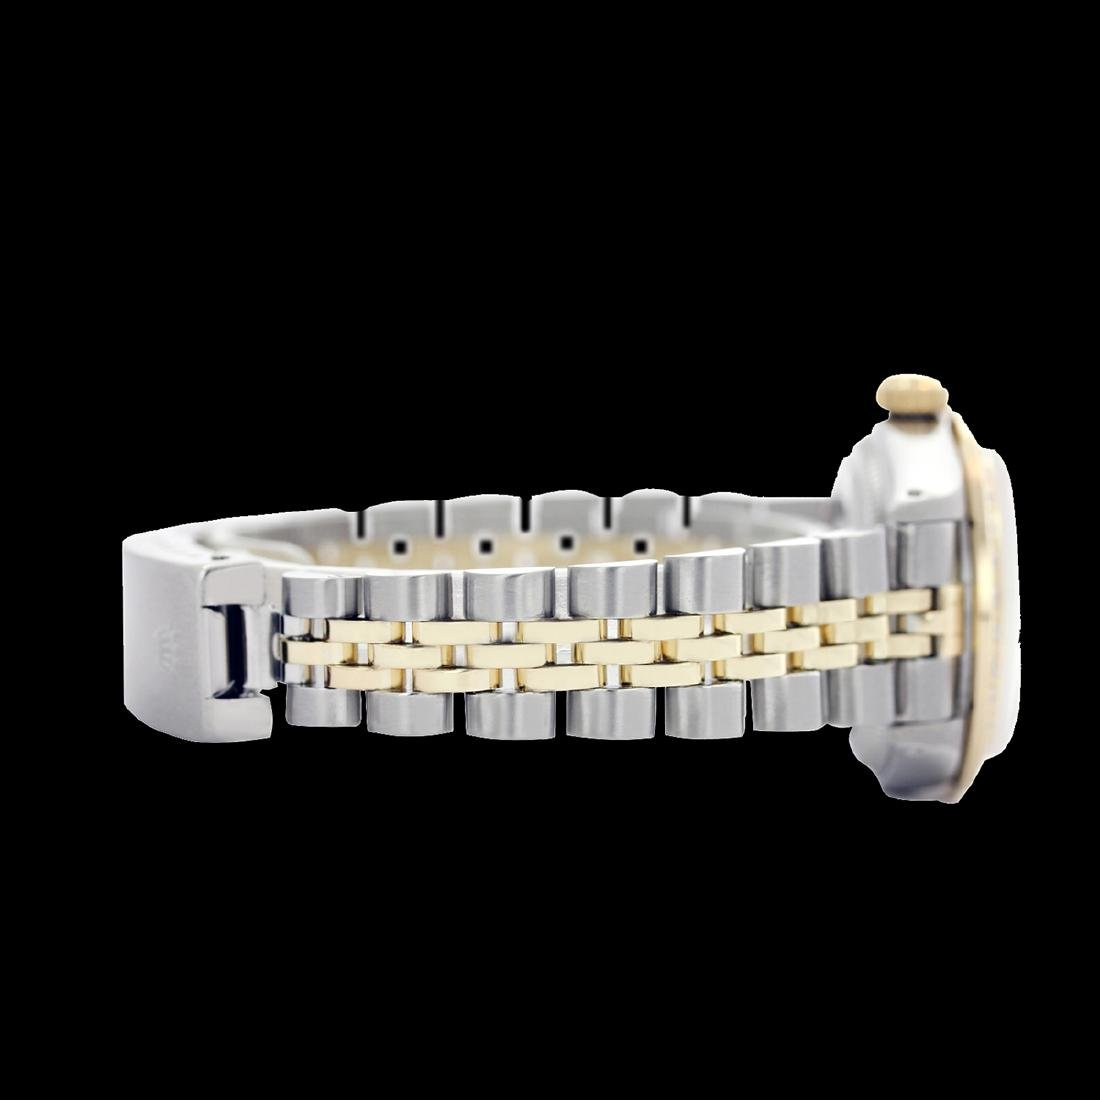 Rolex Men's Two Tone 14K Gold/SS, QuickSet, Diamond - 3